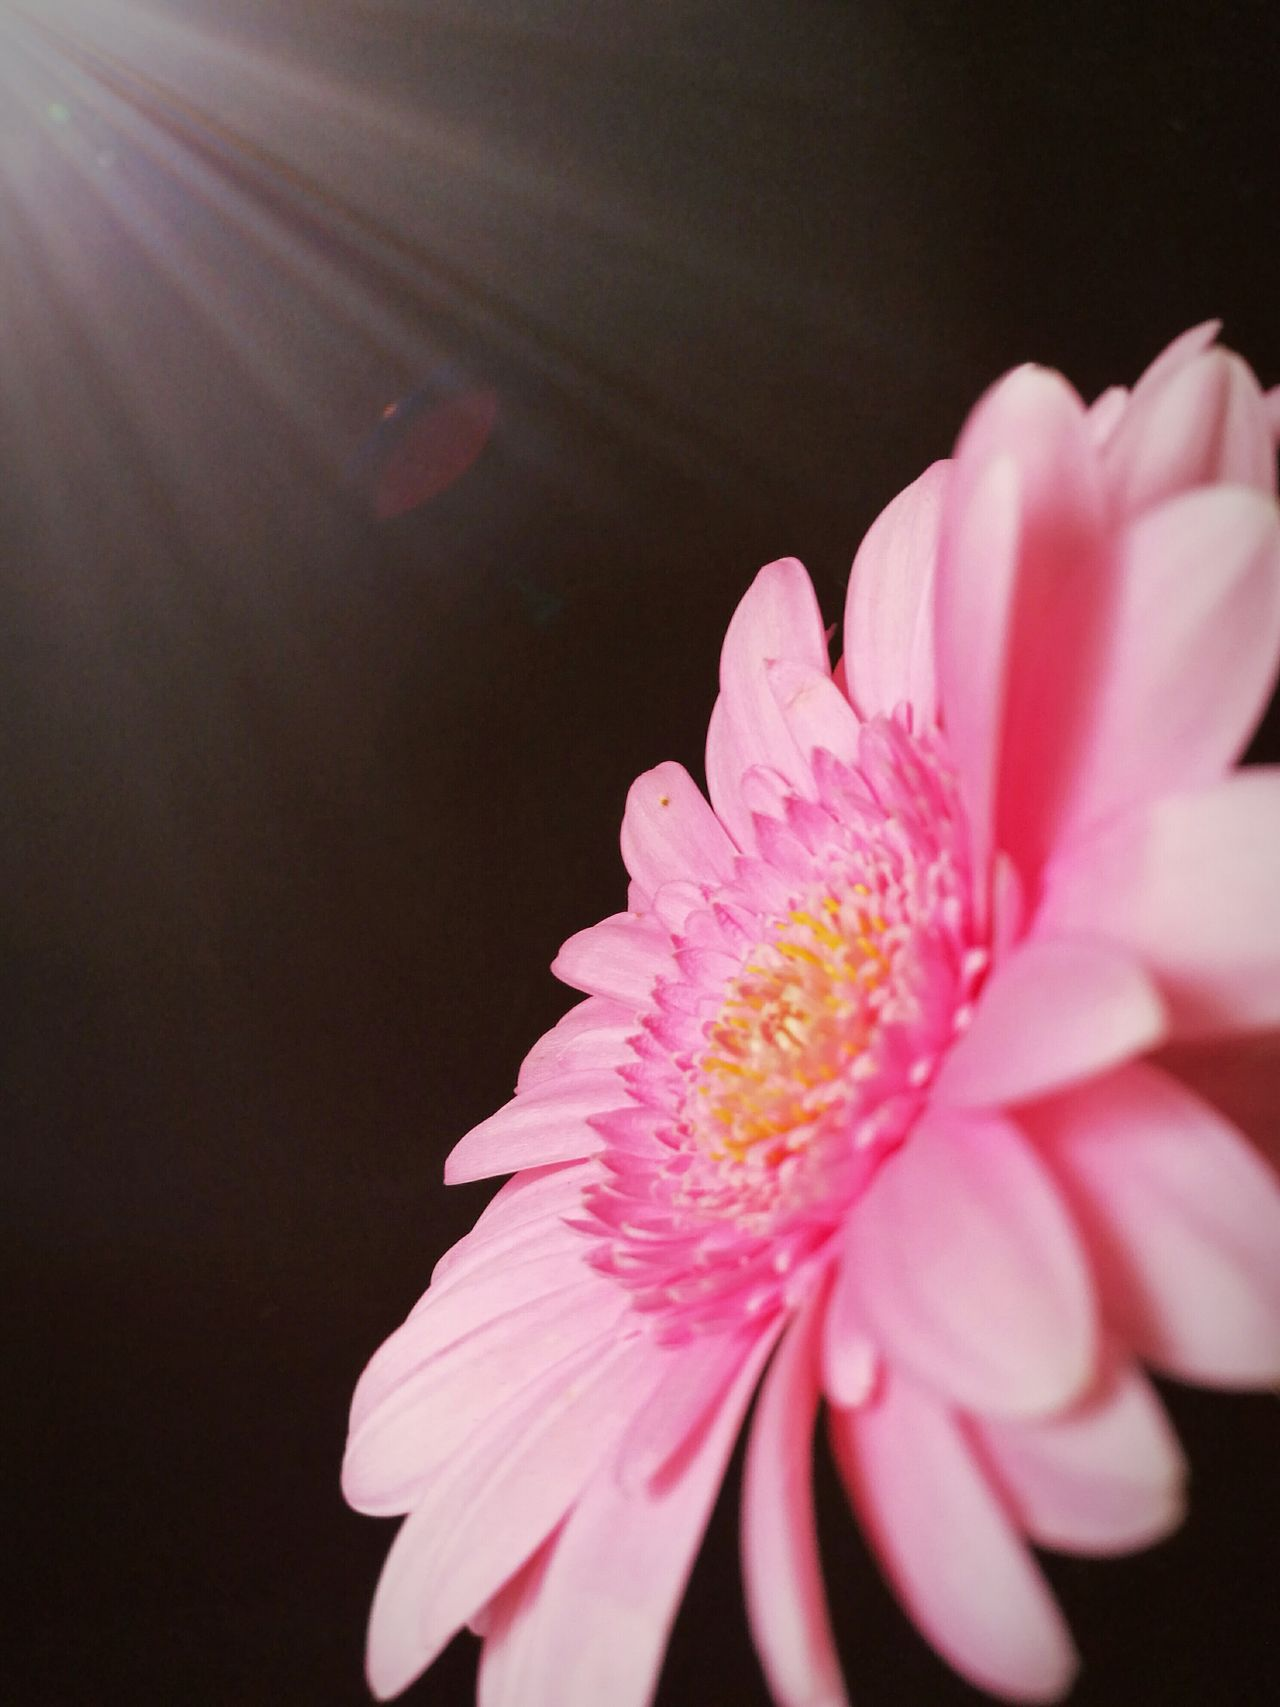 Gerbera Daisy Daisy Flower Flare Pink Pink Flower Pink Daisy Close-up BrightContrast Beautiful